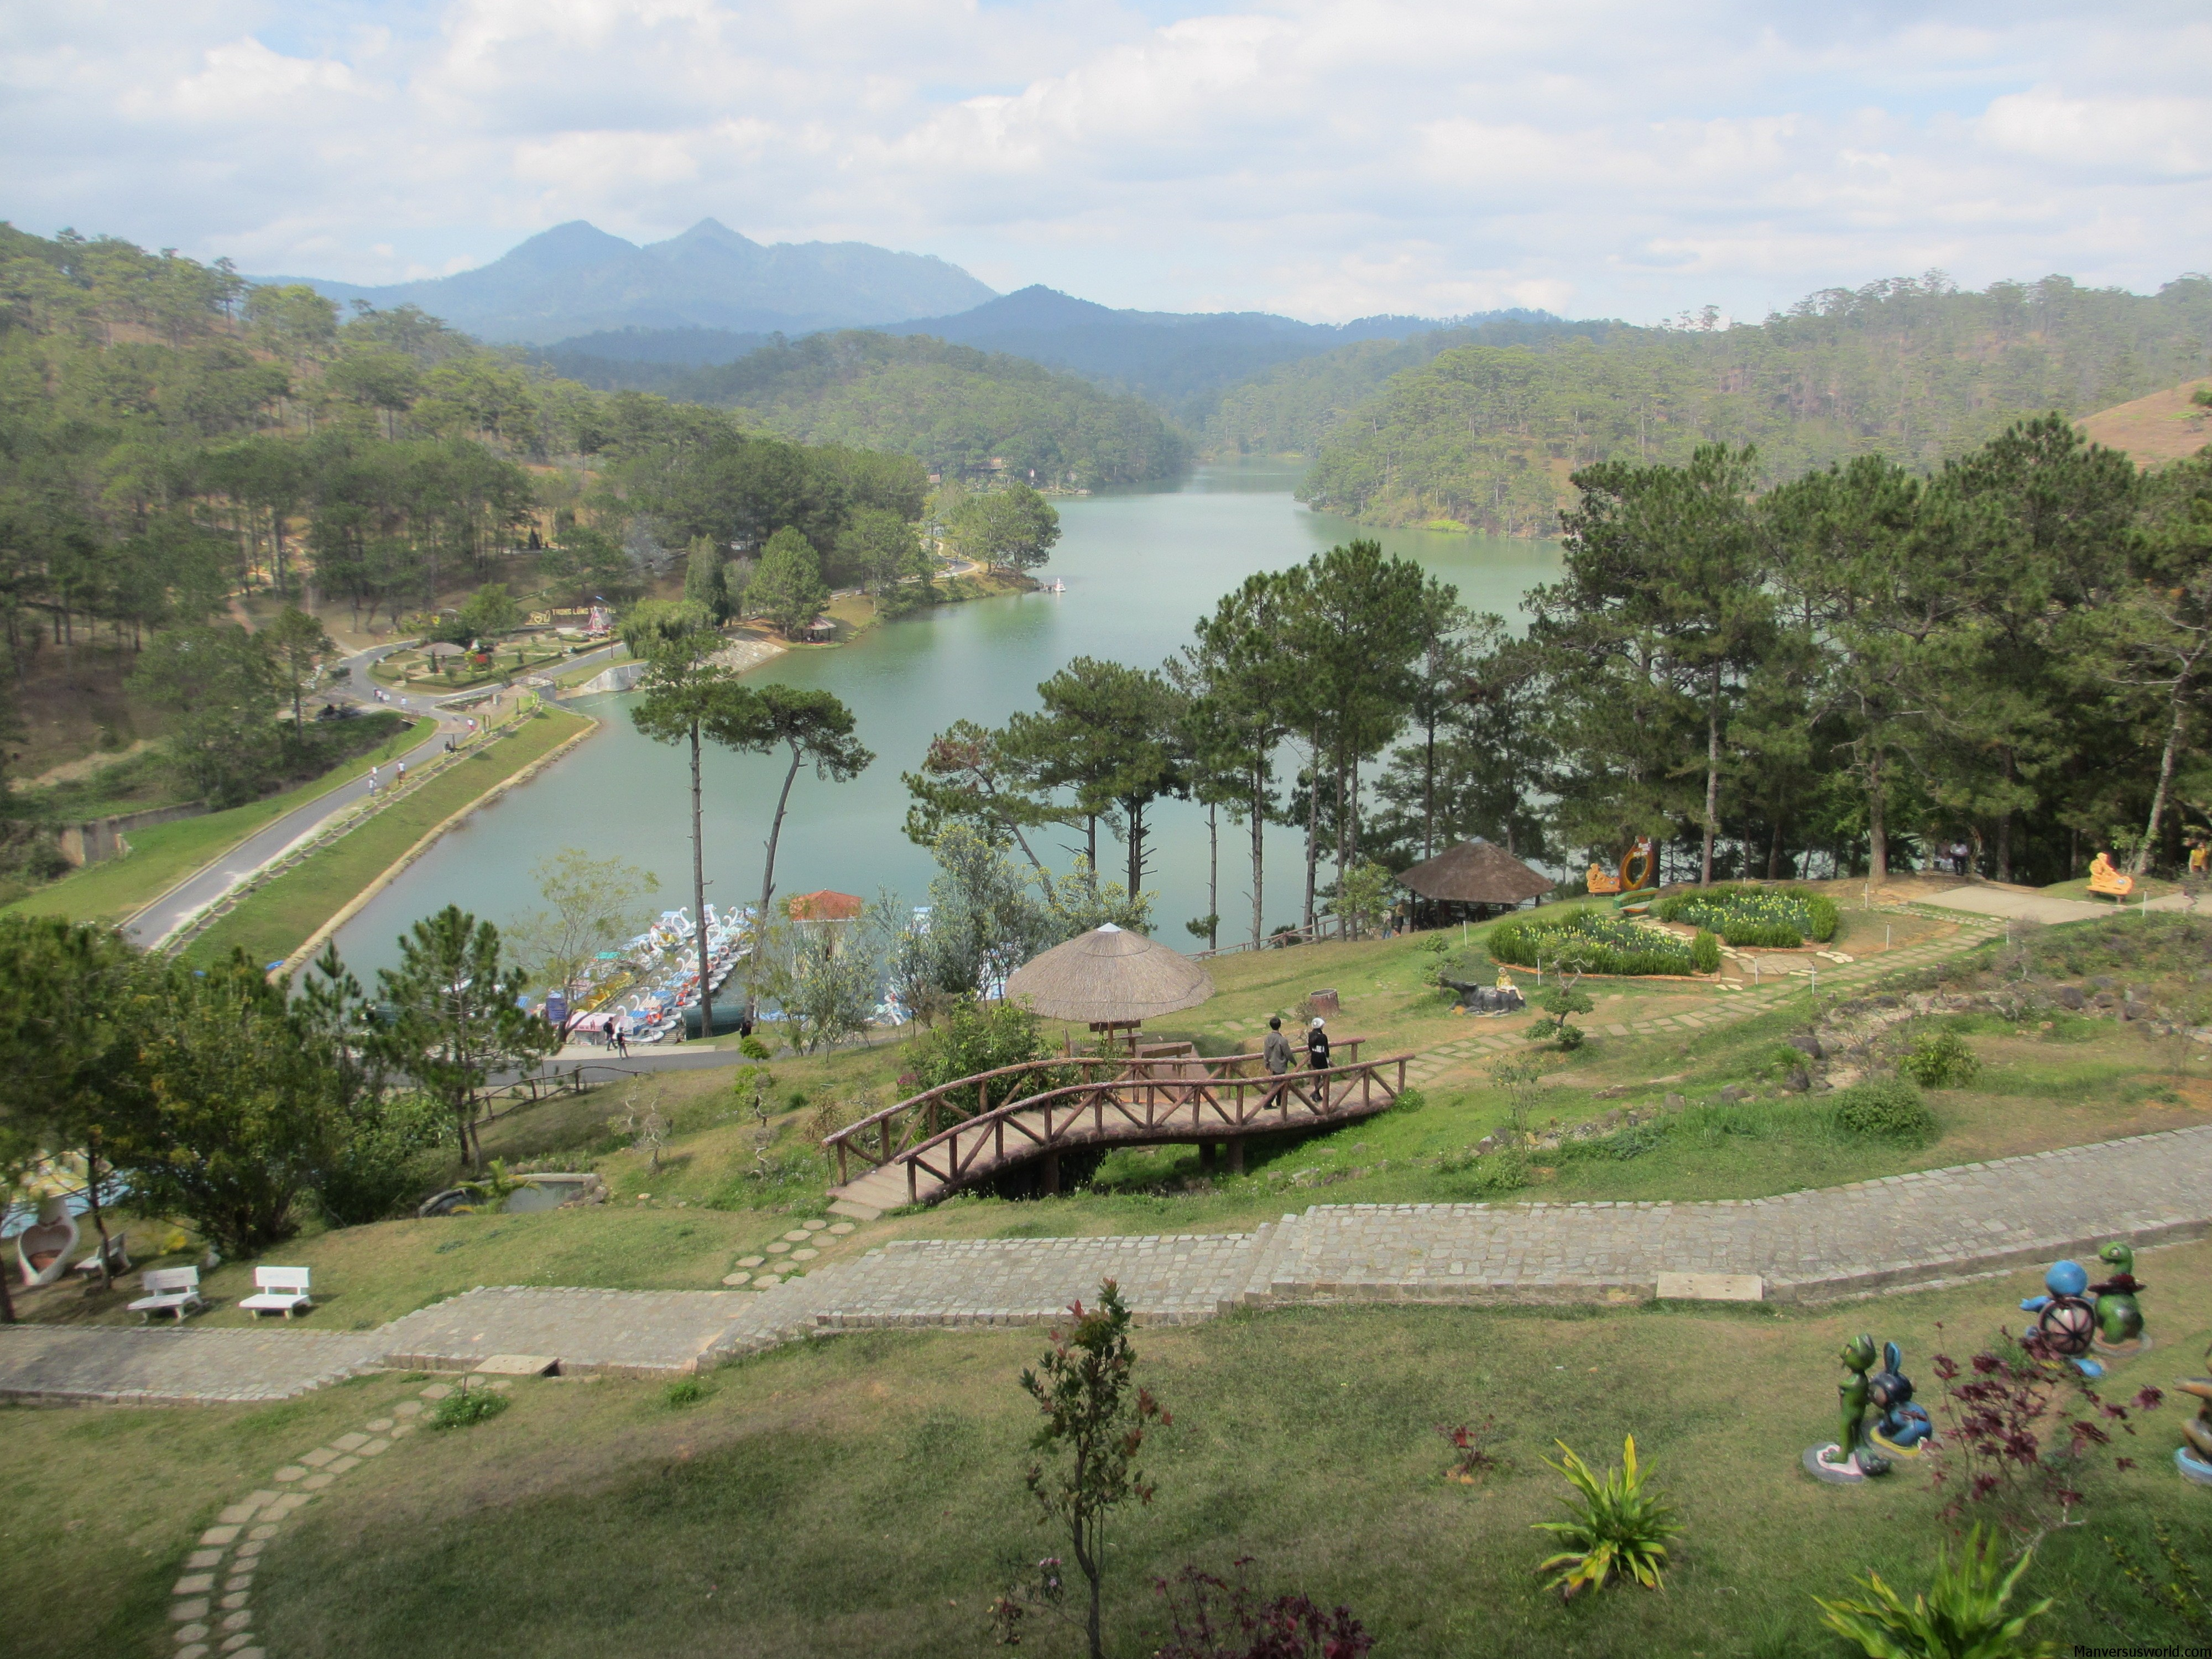 The view from Dalat's Valley of Love, Vietnam